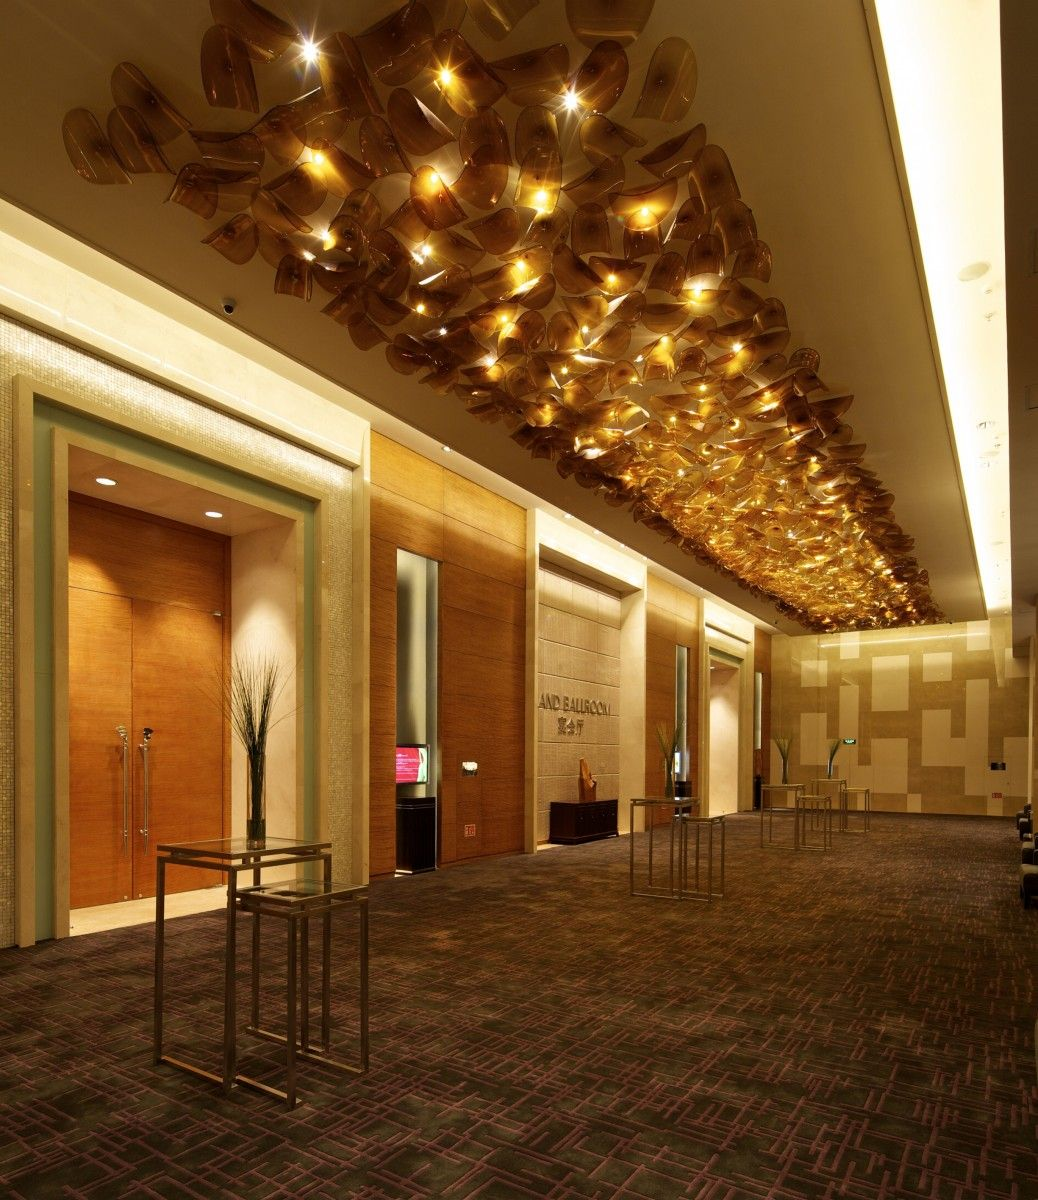 Banquet Hall Design: LASVIT. The Mix Of Stone And Wood Create A Statement. The